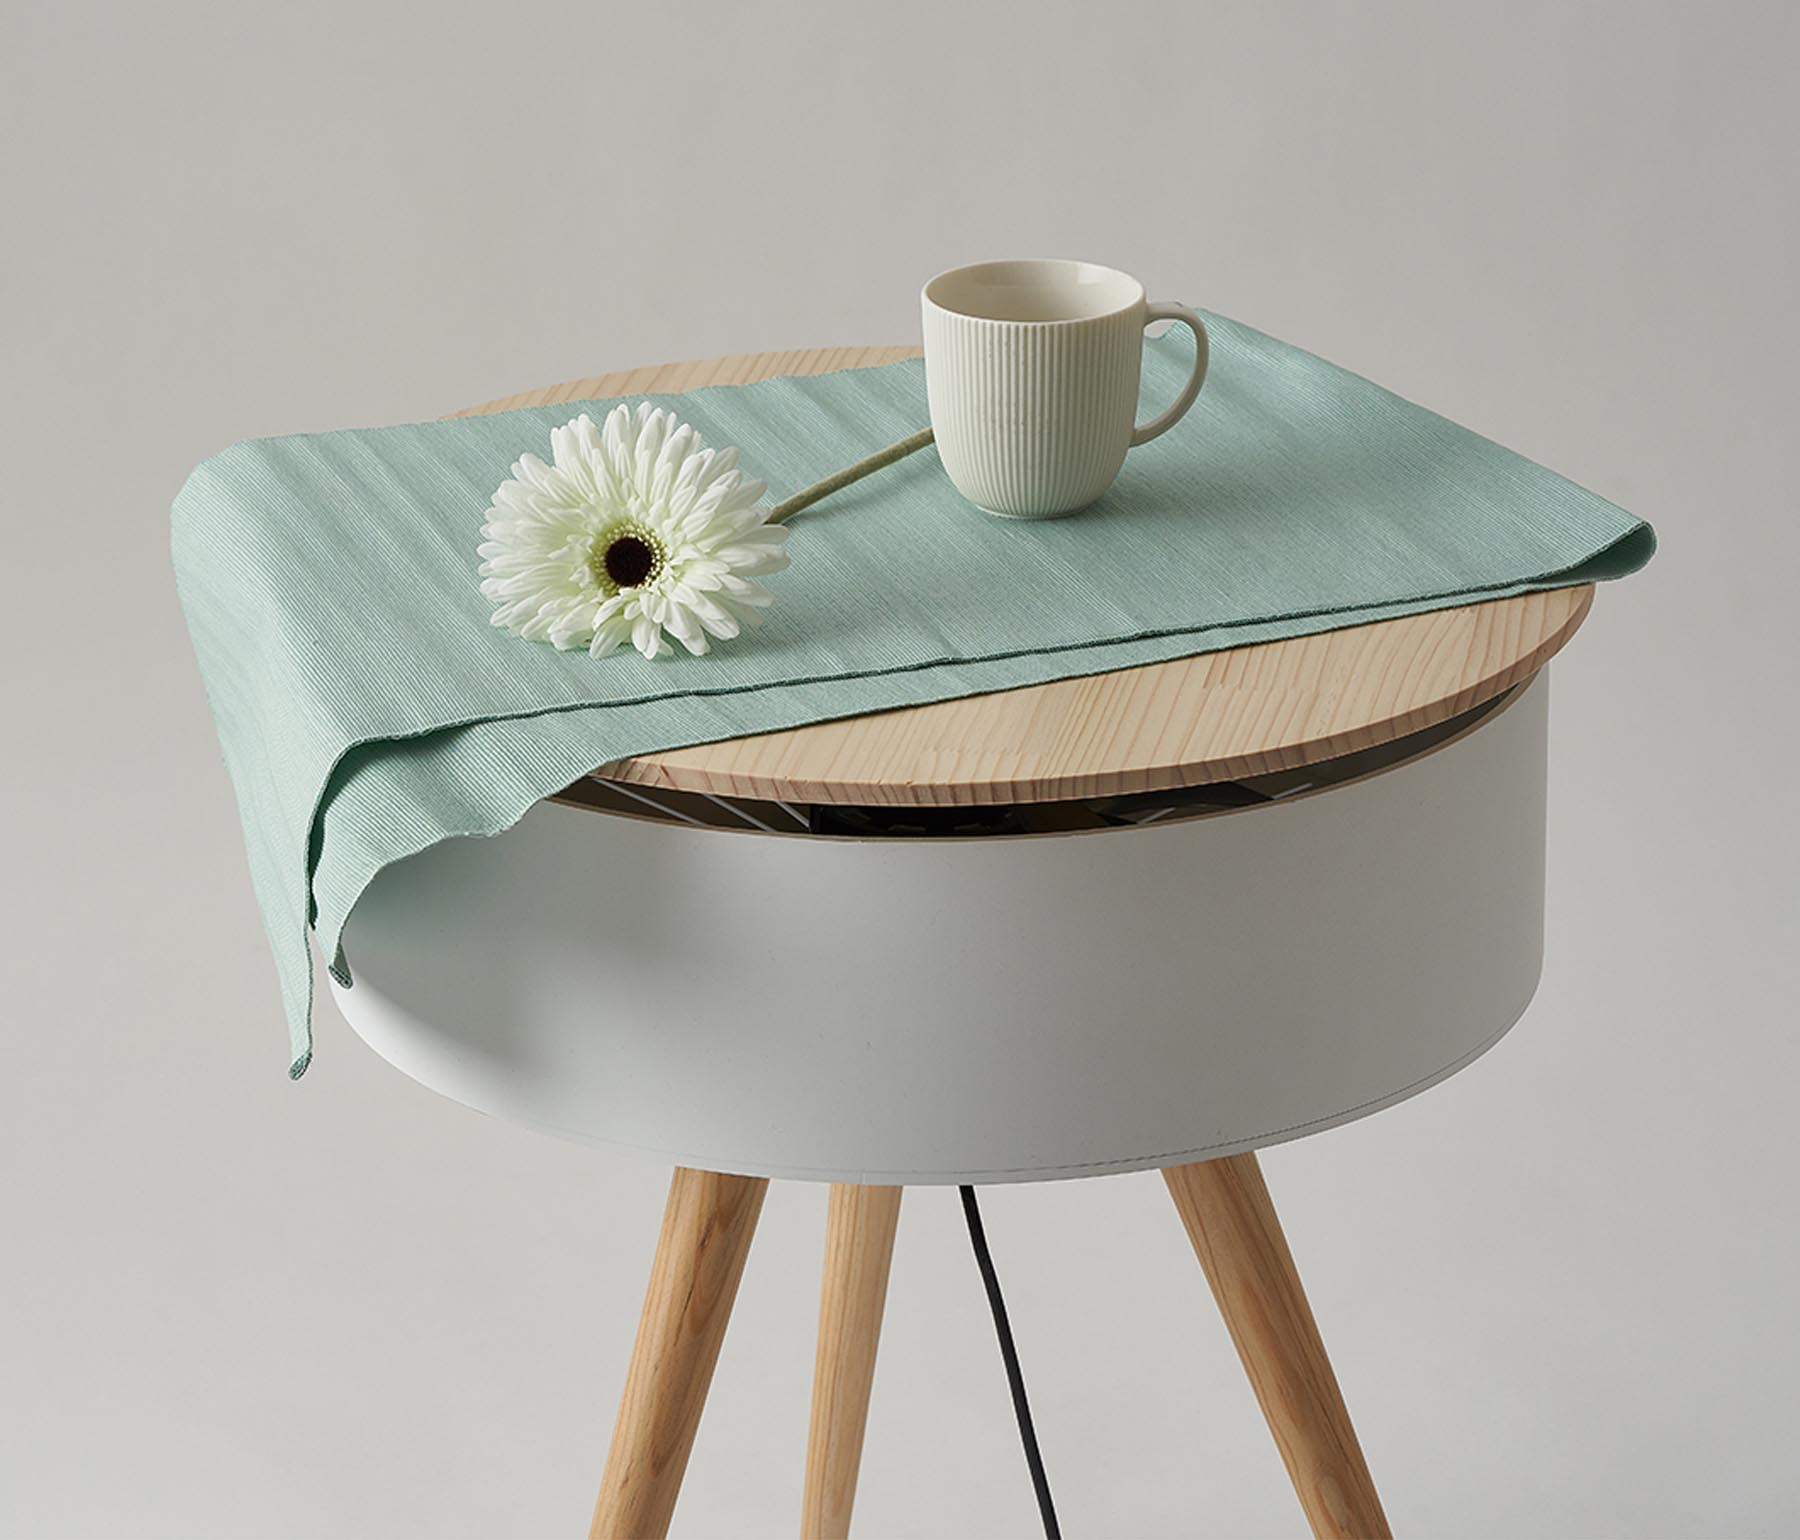 Brise Table Furniture Plus Fan by Wonho Lee.